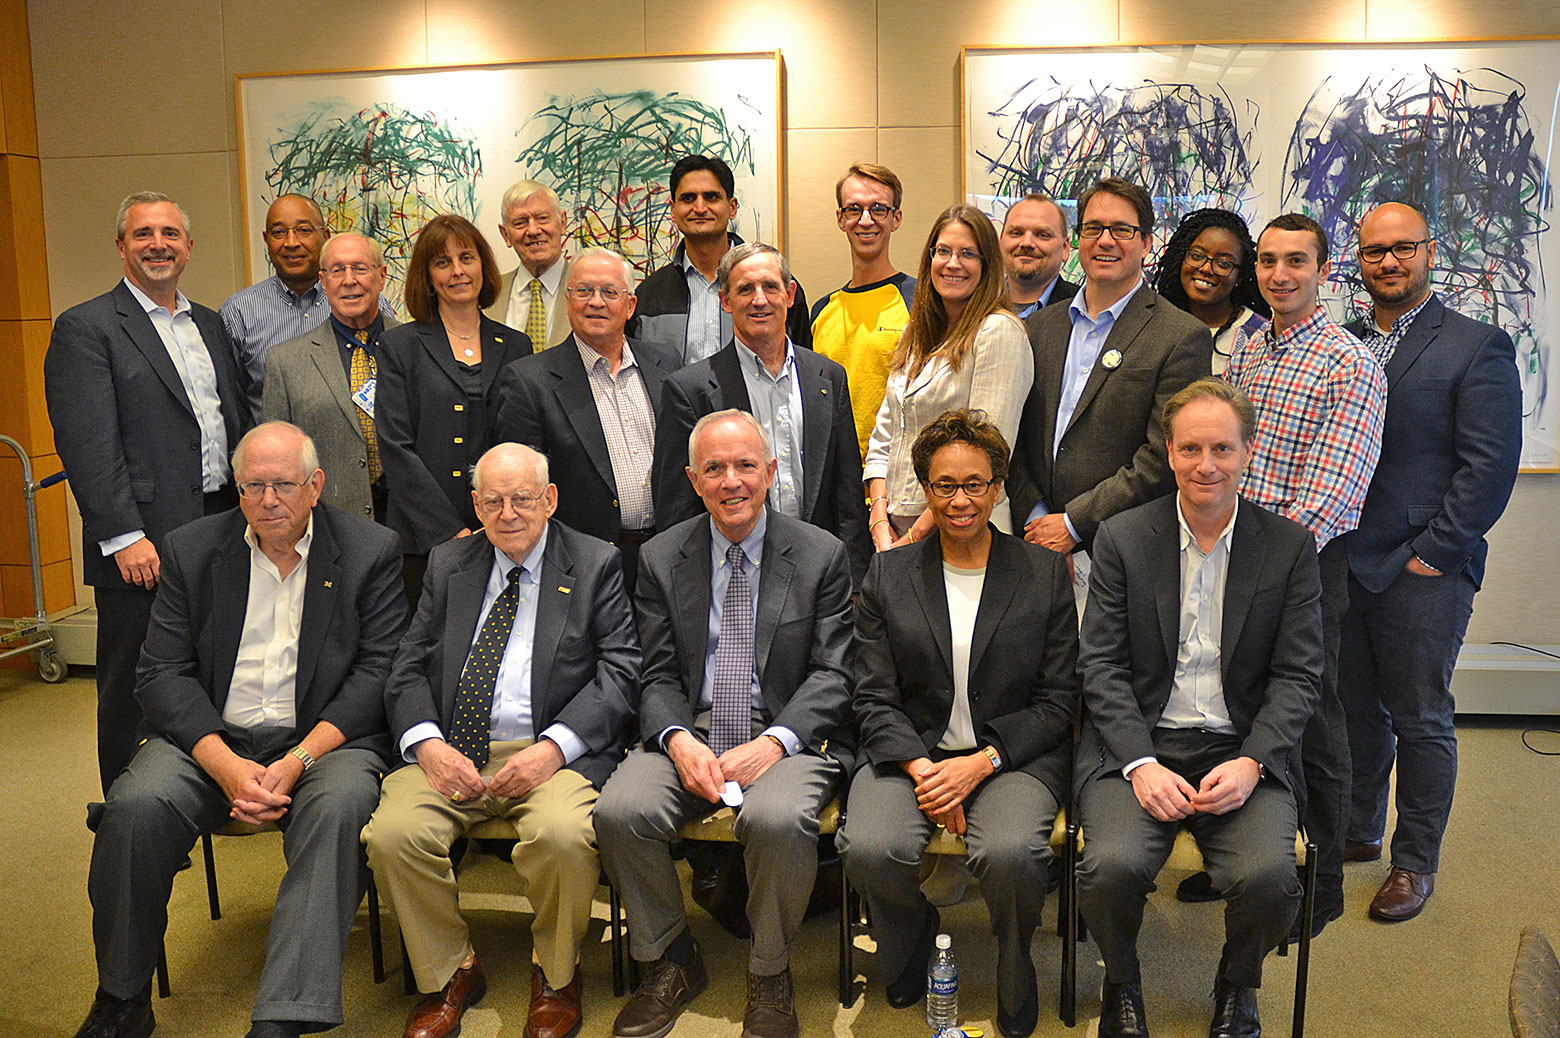 Jim Wilkes and other ChE alumni in 2016